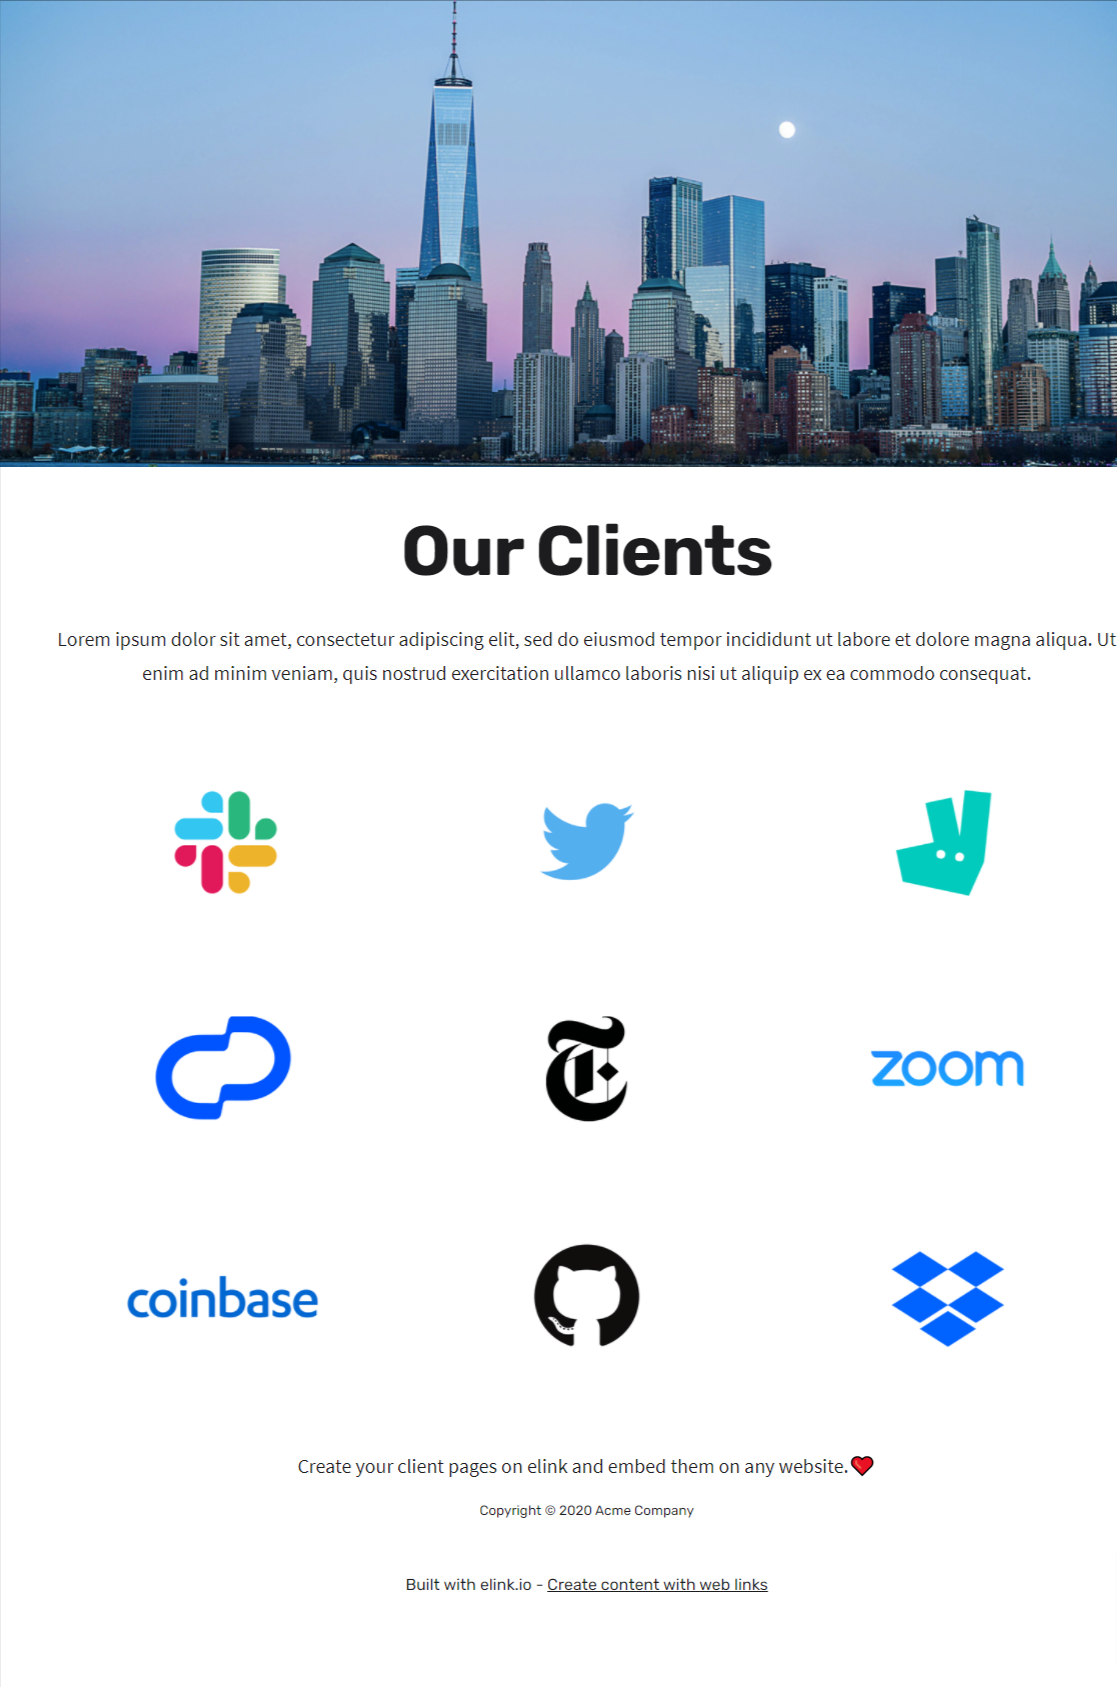 Client's page template for businesses